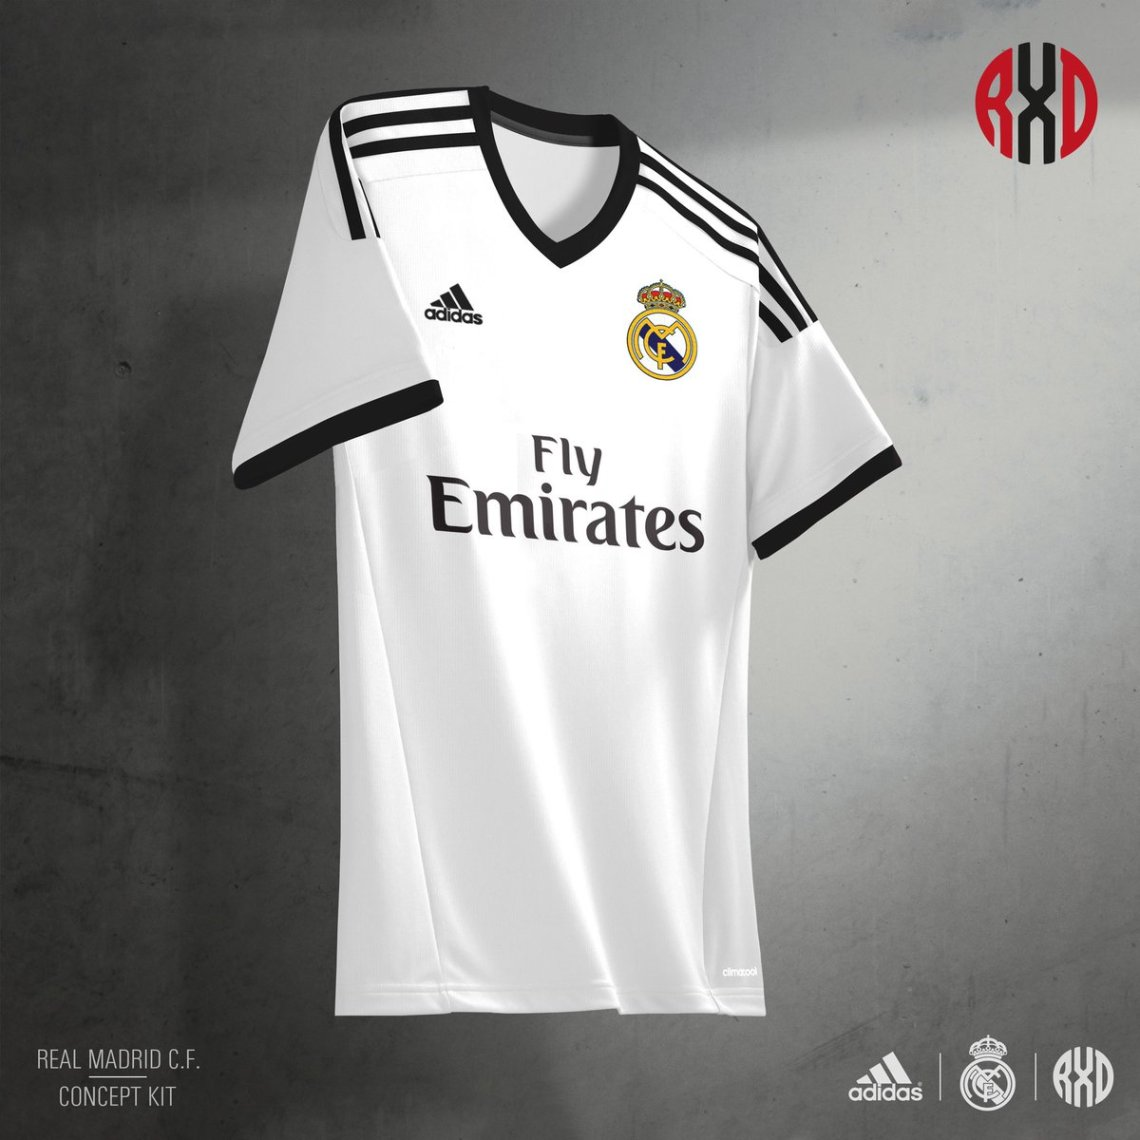 """Download RevXports® Design on Twitter: """"Real Madrid 18-19 